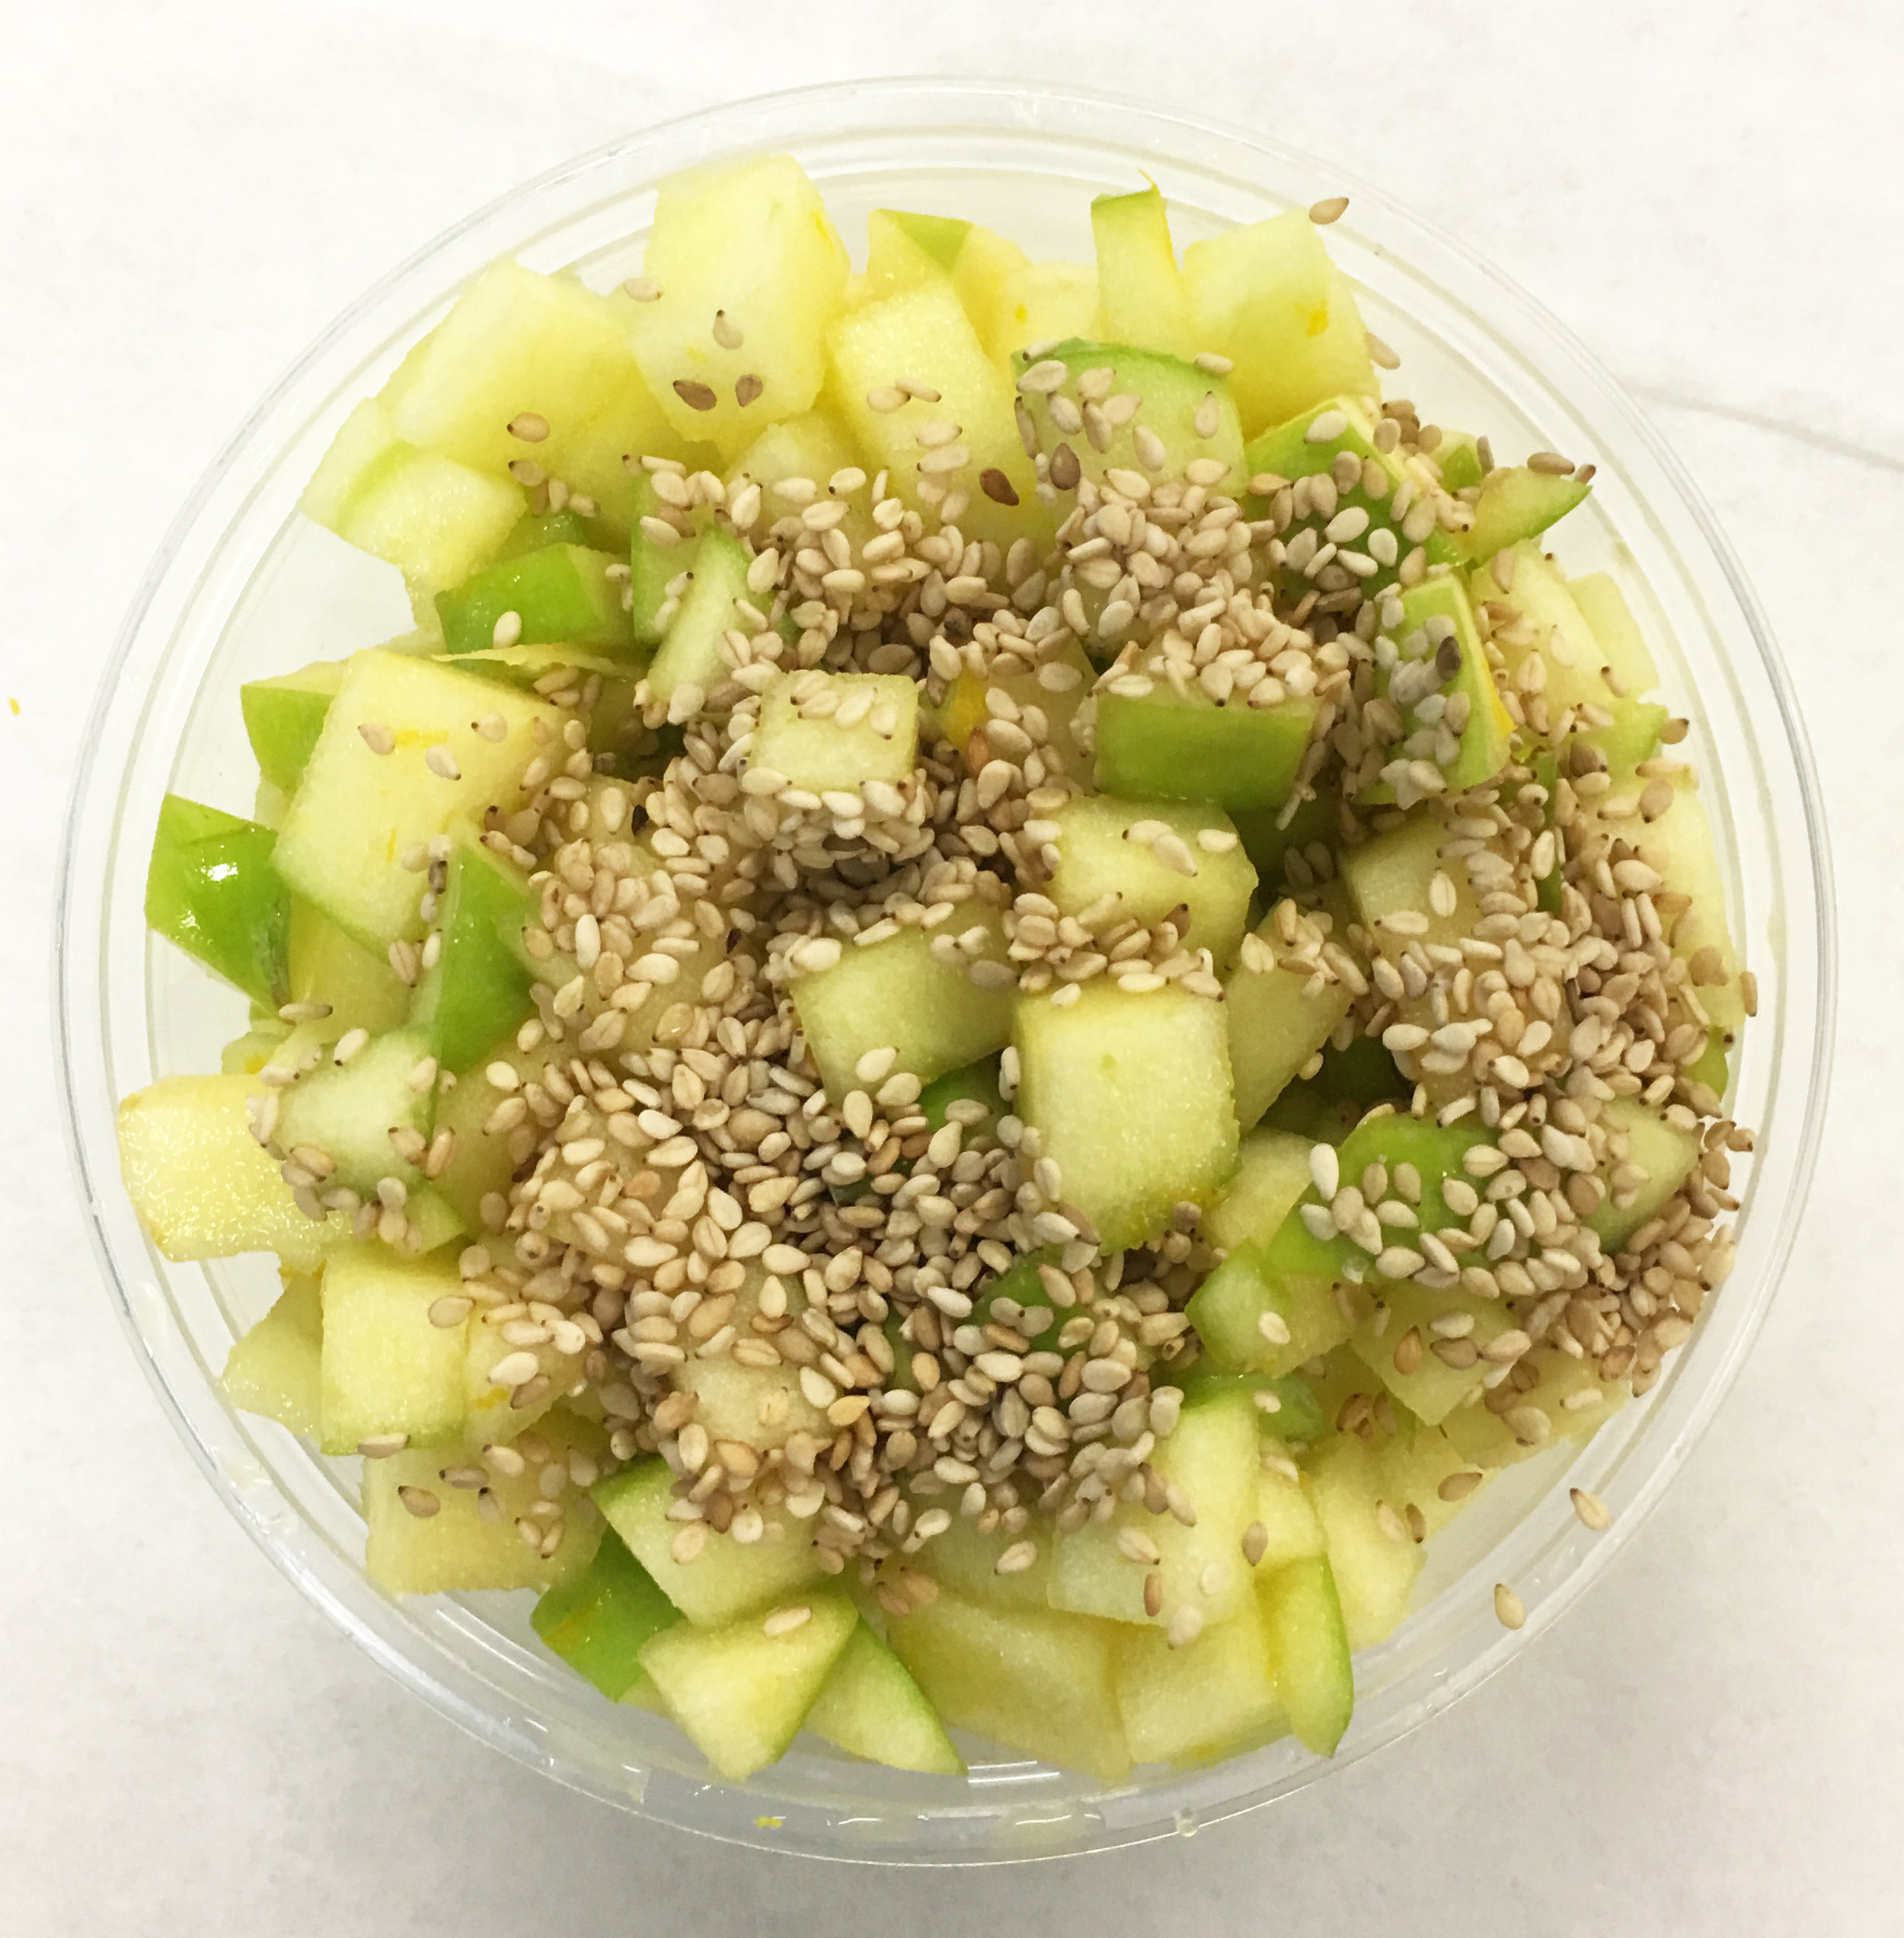 Raw apple ceviche with toasted sesame seeds and a citrus marinade.